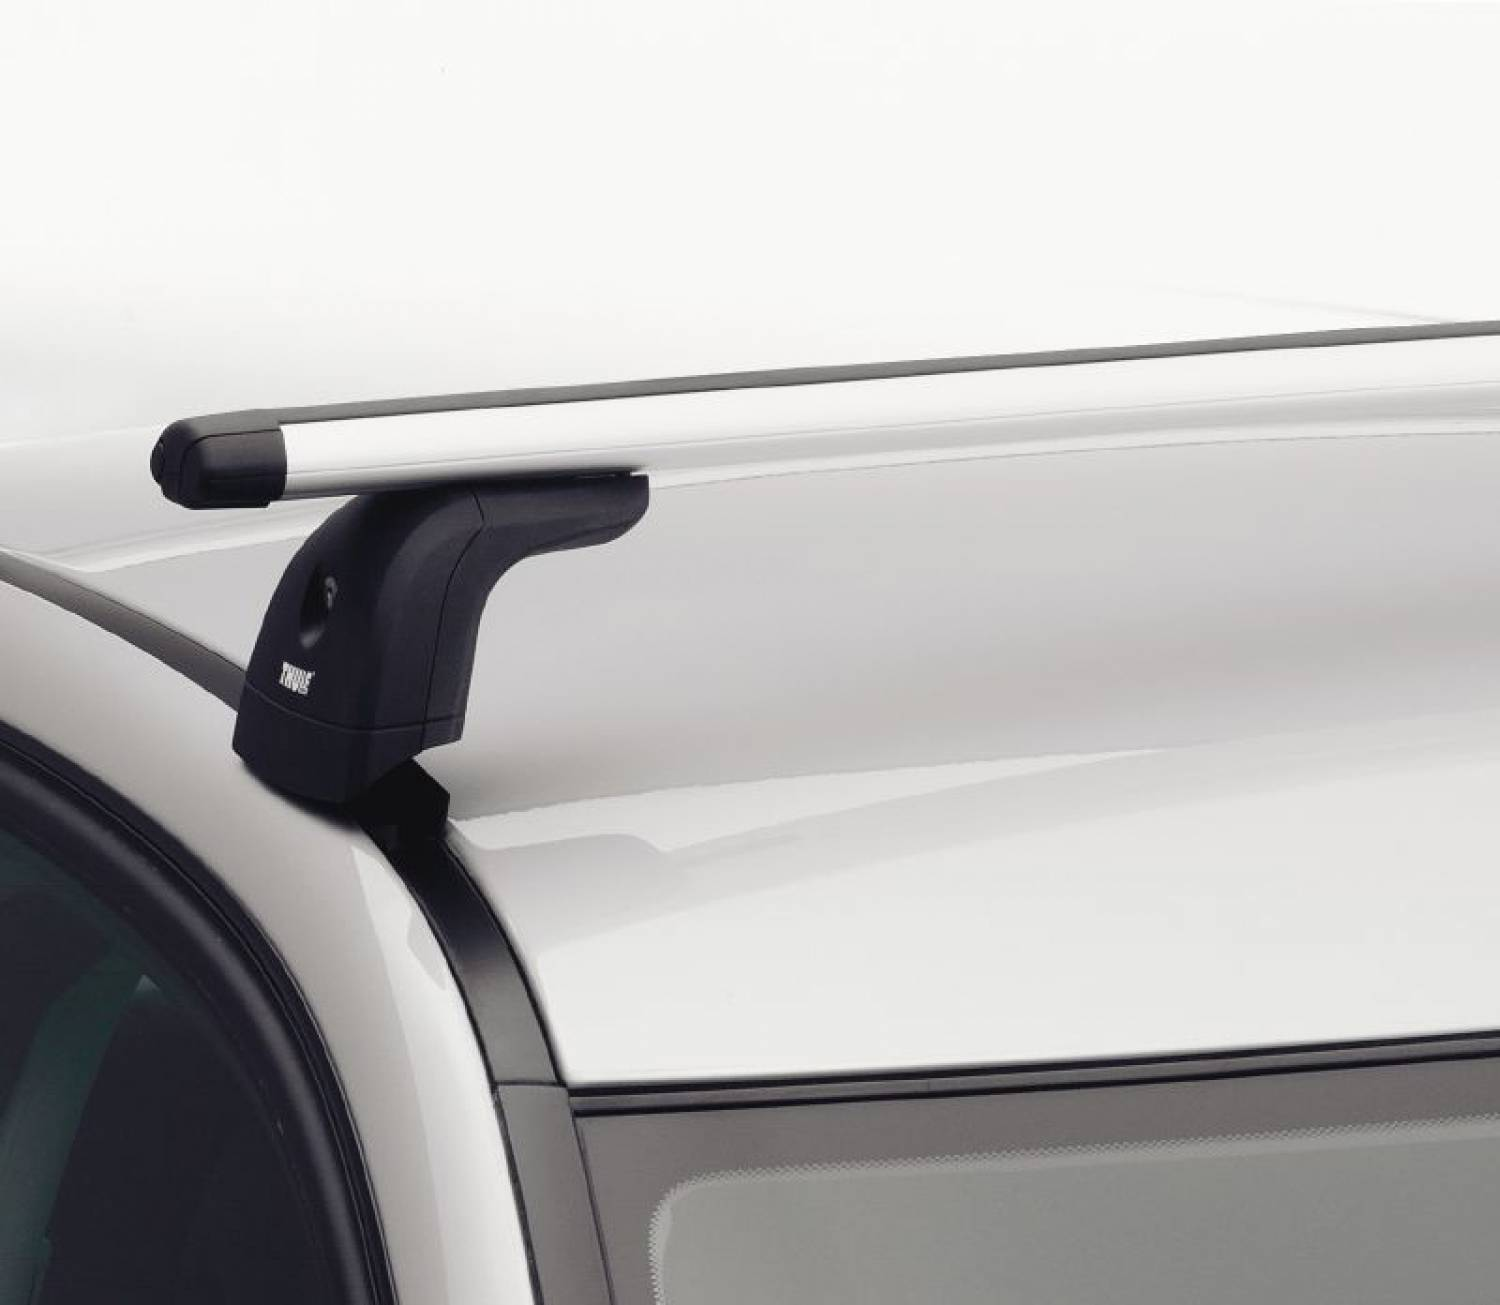 Thule Roof Rack Foot For Cars With Integrated Roof Rail Or